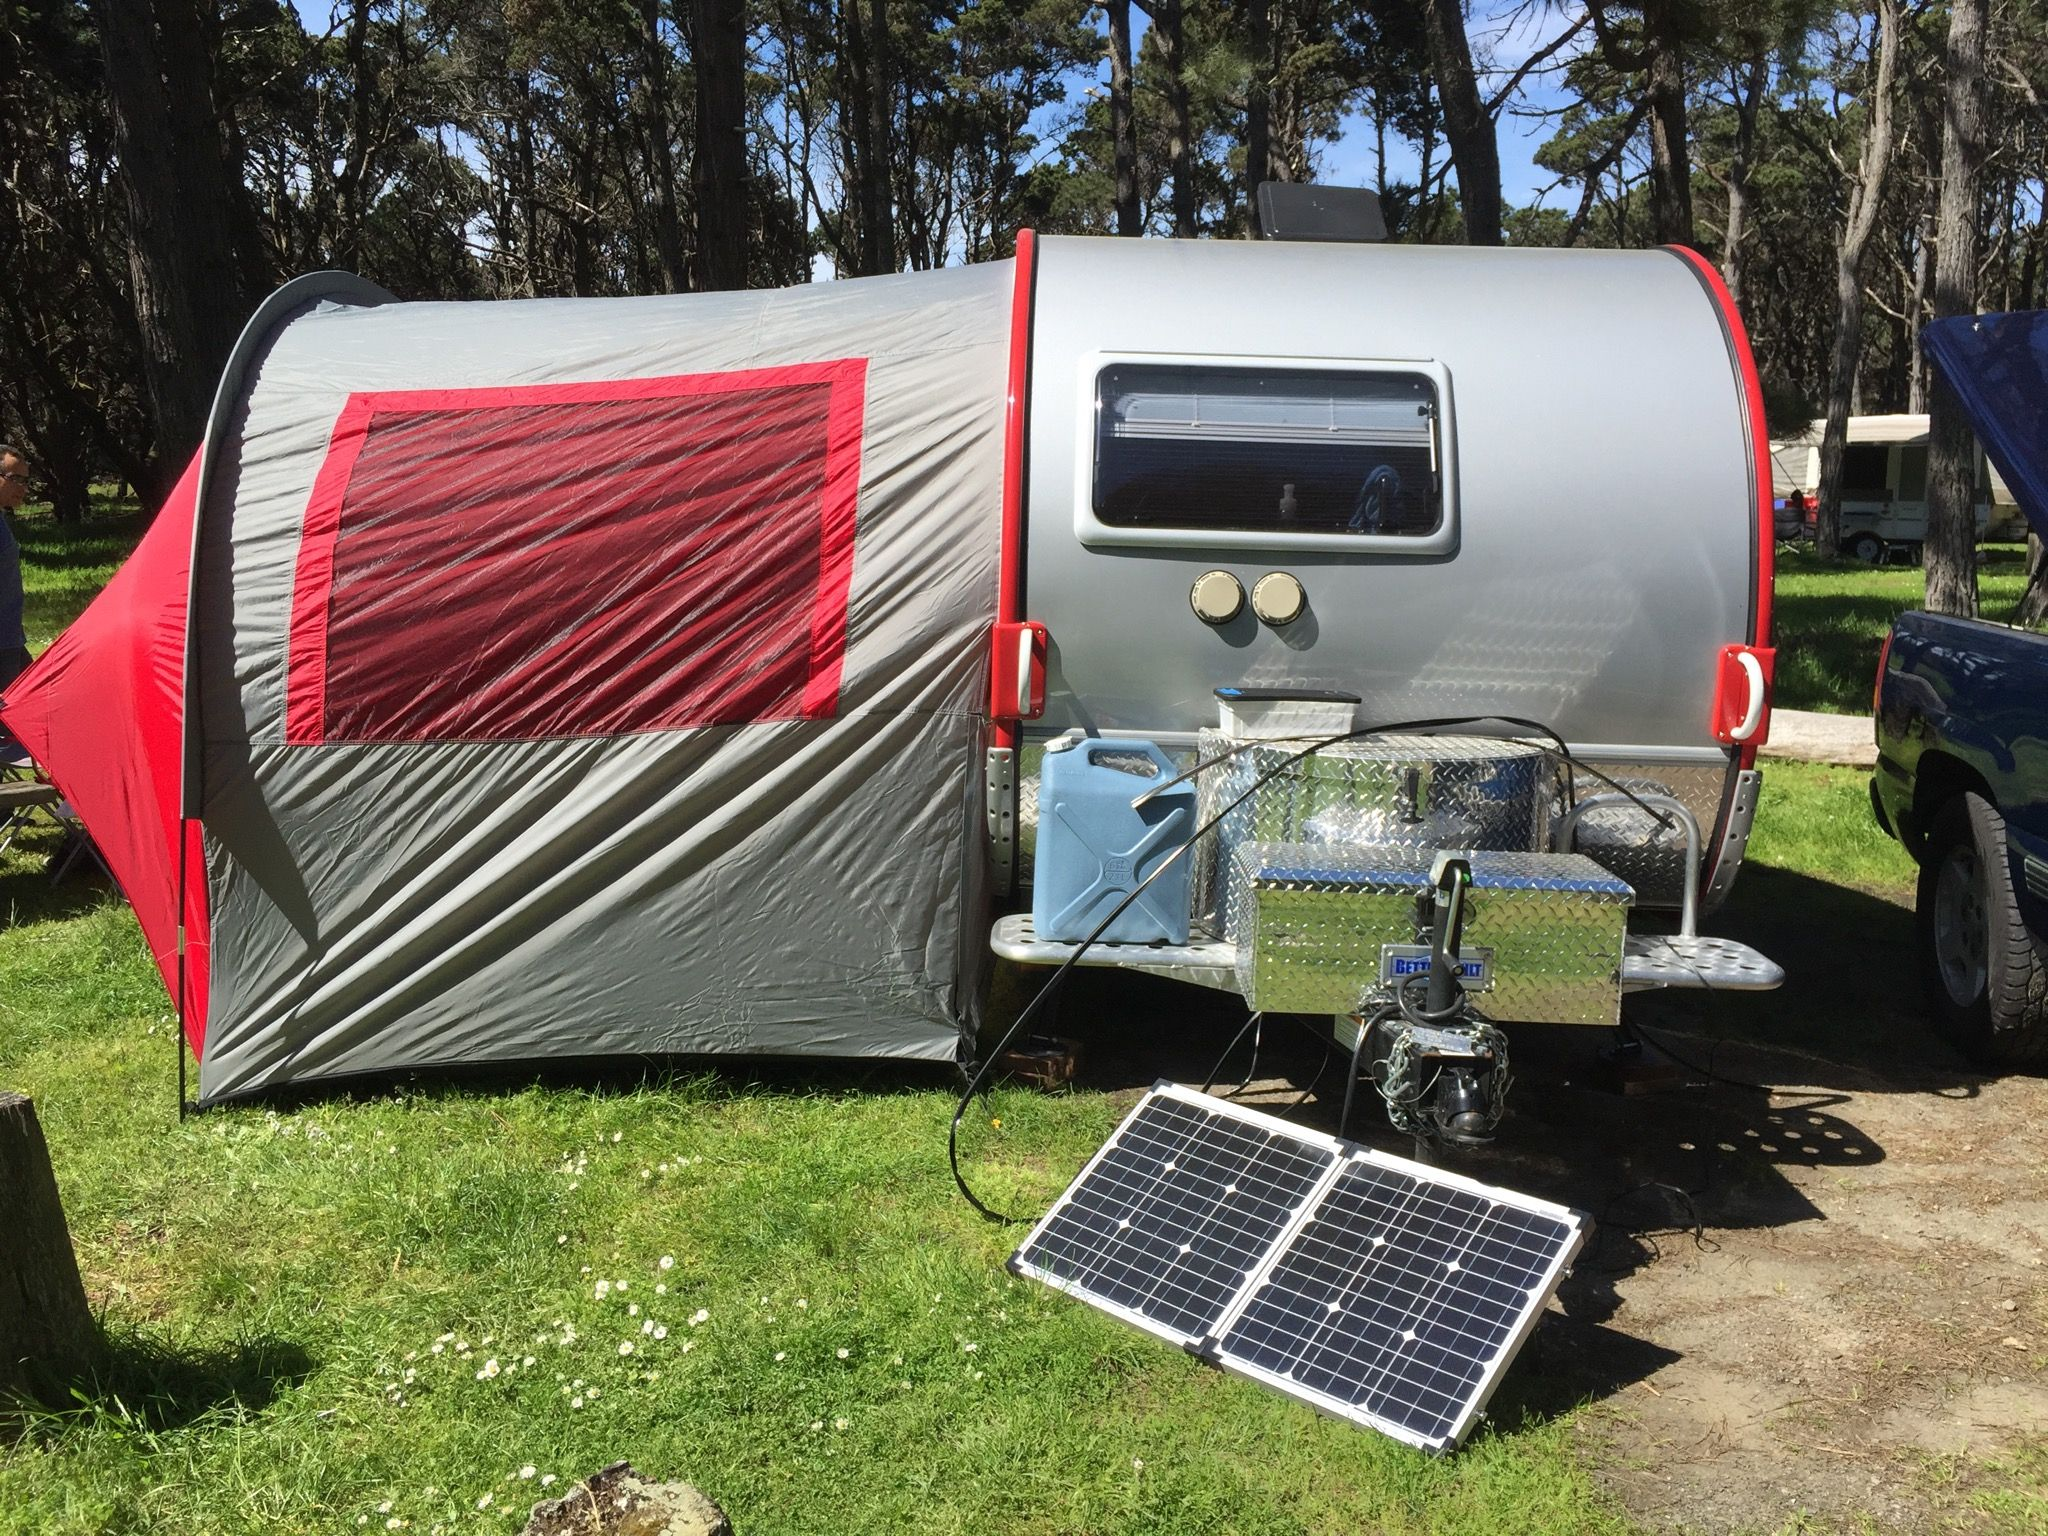 T@B Outback Trailer- Equipped with Z& solar panel and PahaQue tent. & T@B Outback Trailer- Equipped with Zamp solar panel and PahaQue ...